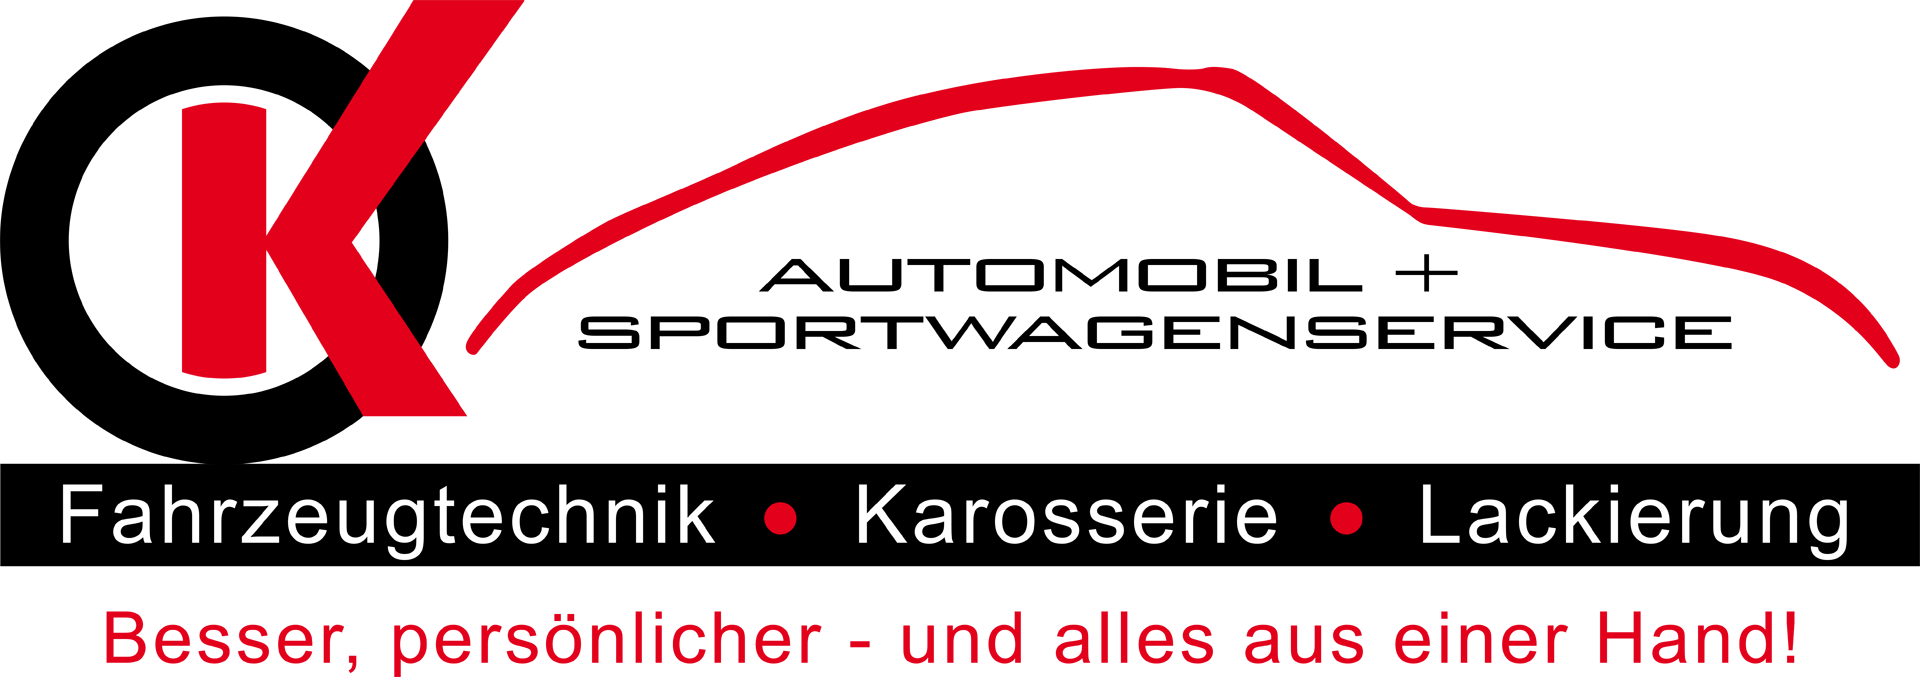 Logo ok-automobile.com